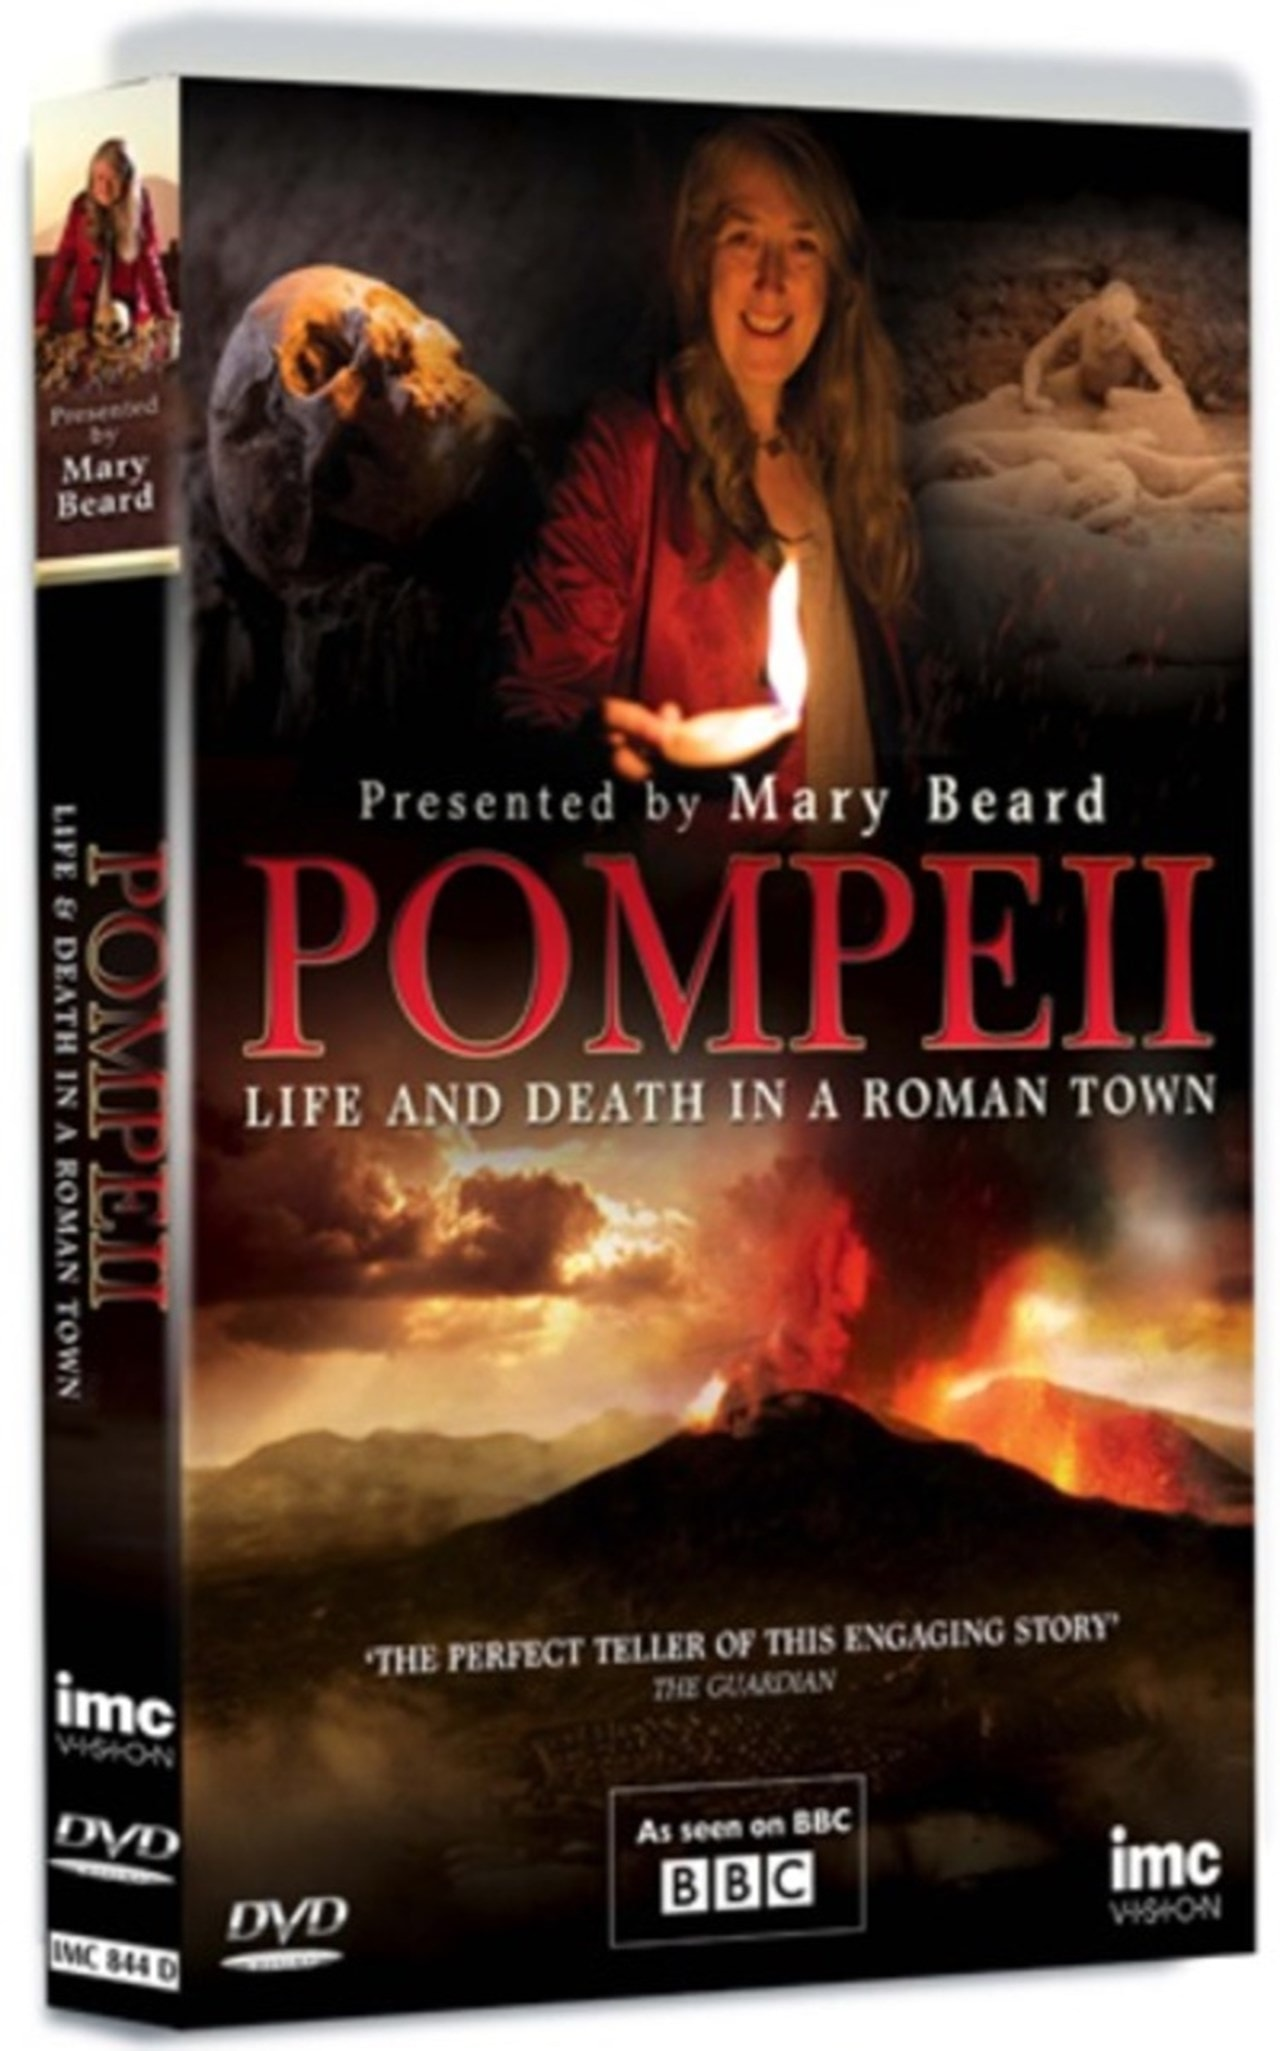 Pompeii - Life and Death in a Roman Town - 1